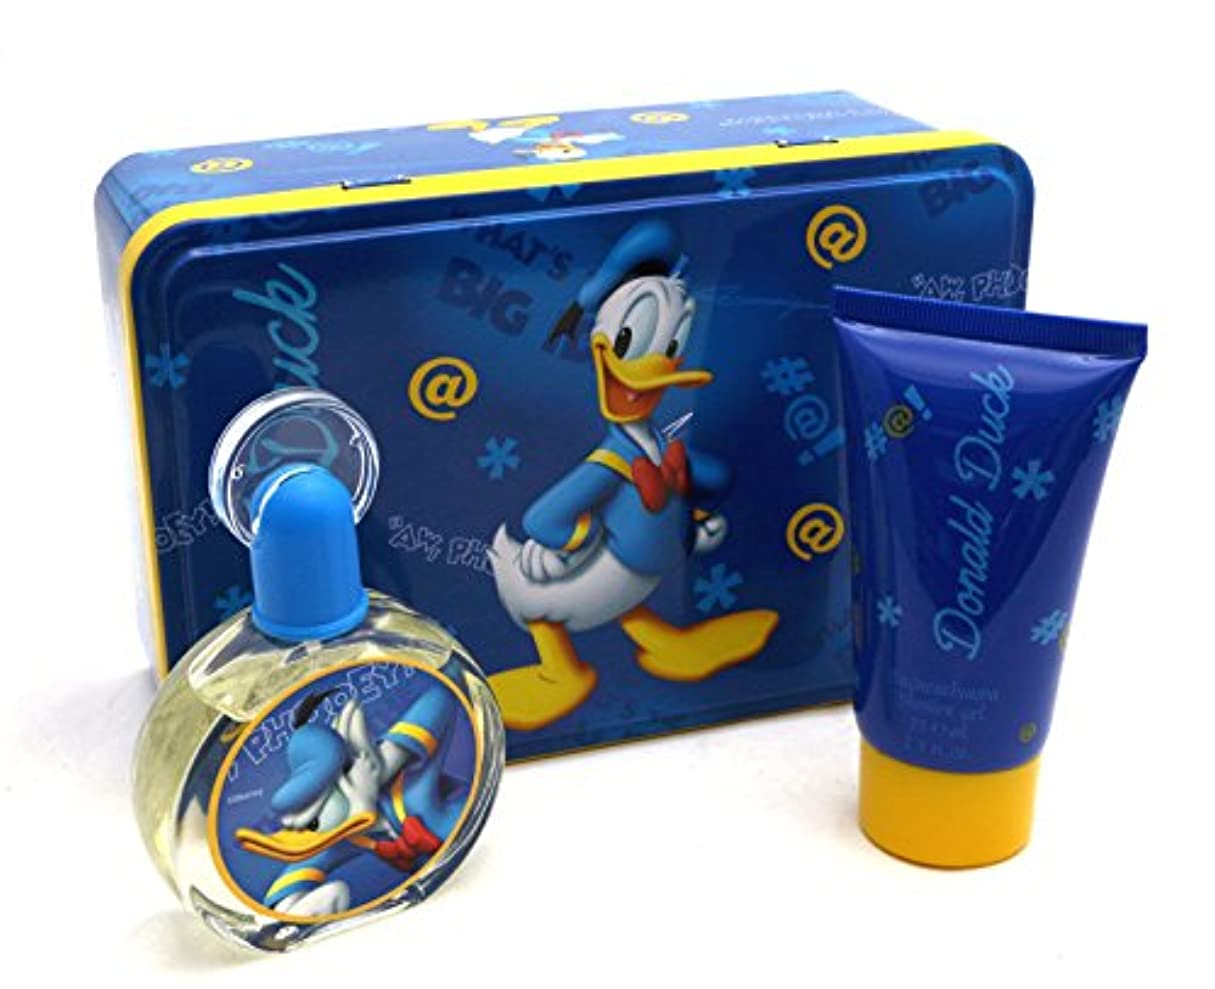 状説得なにDonald Duck (ドナルドダック) 1.7 oz (50ml) EDT Spray + 2.5 oz (75ml) Shower Gel by Disney